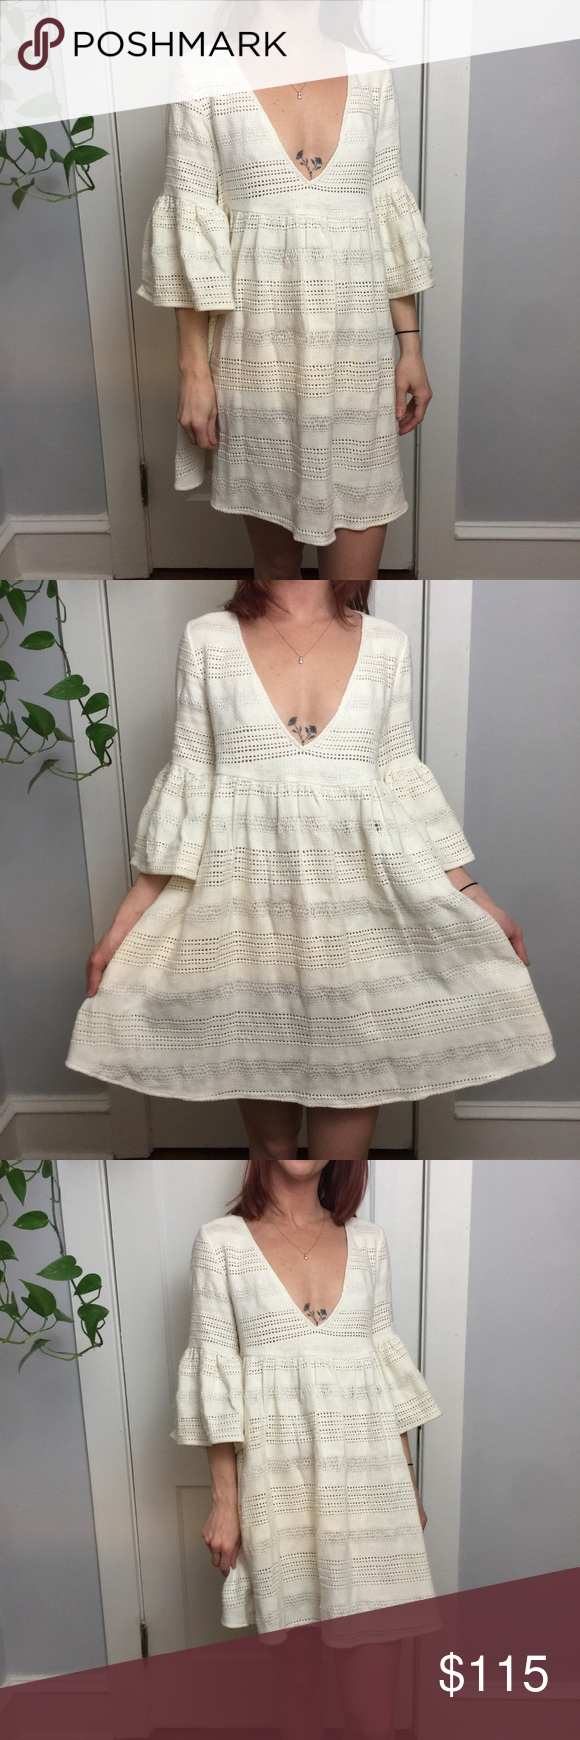 Mara Hoffman Swim Crochet Bell Sleeve Beach Dress Amazing, size small and is Bell Sleeve like partially sheer and is in great condition worn a few times on vacation. Mara Hoffman Dresses Midi #crochetbeachdress